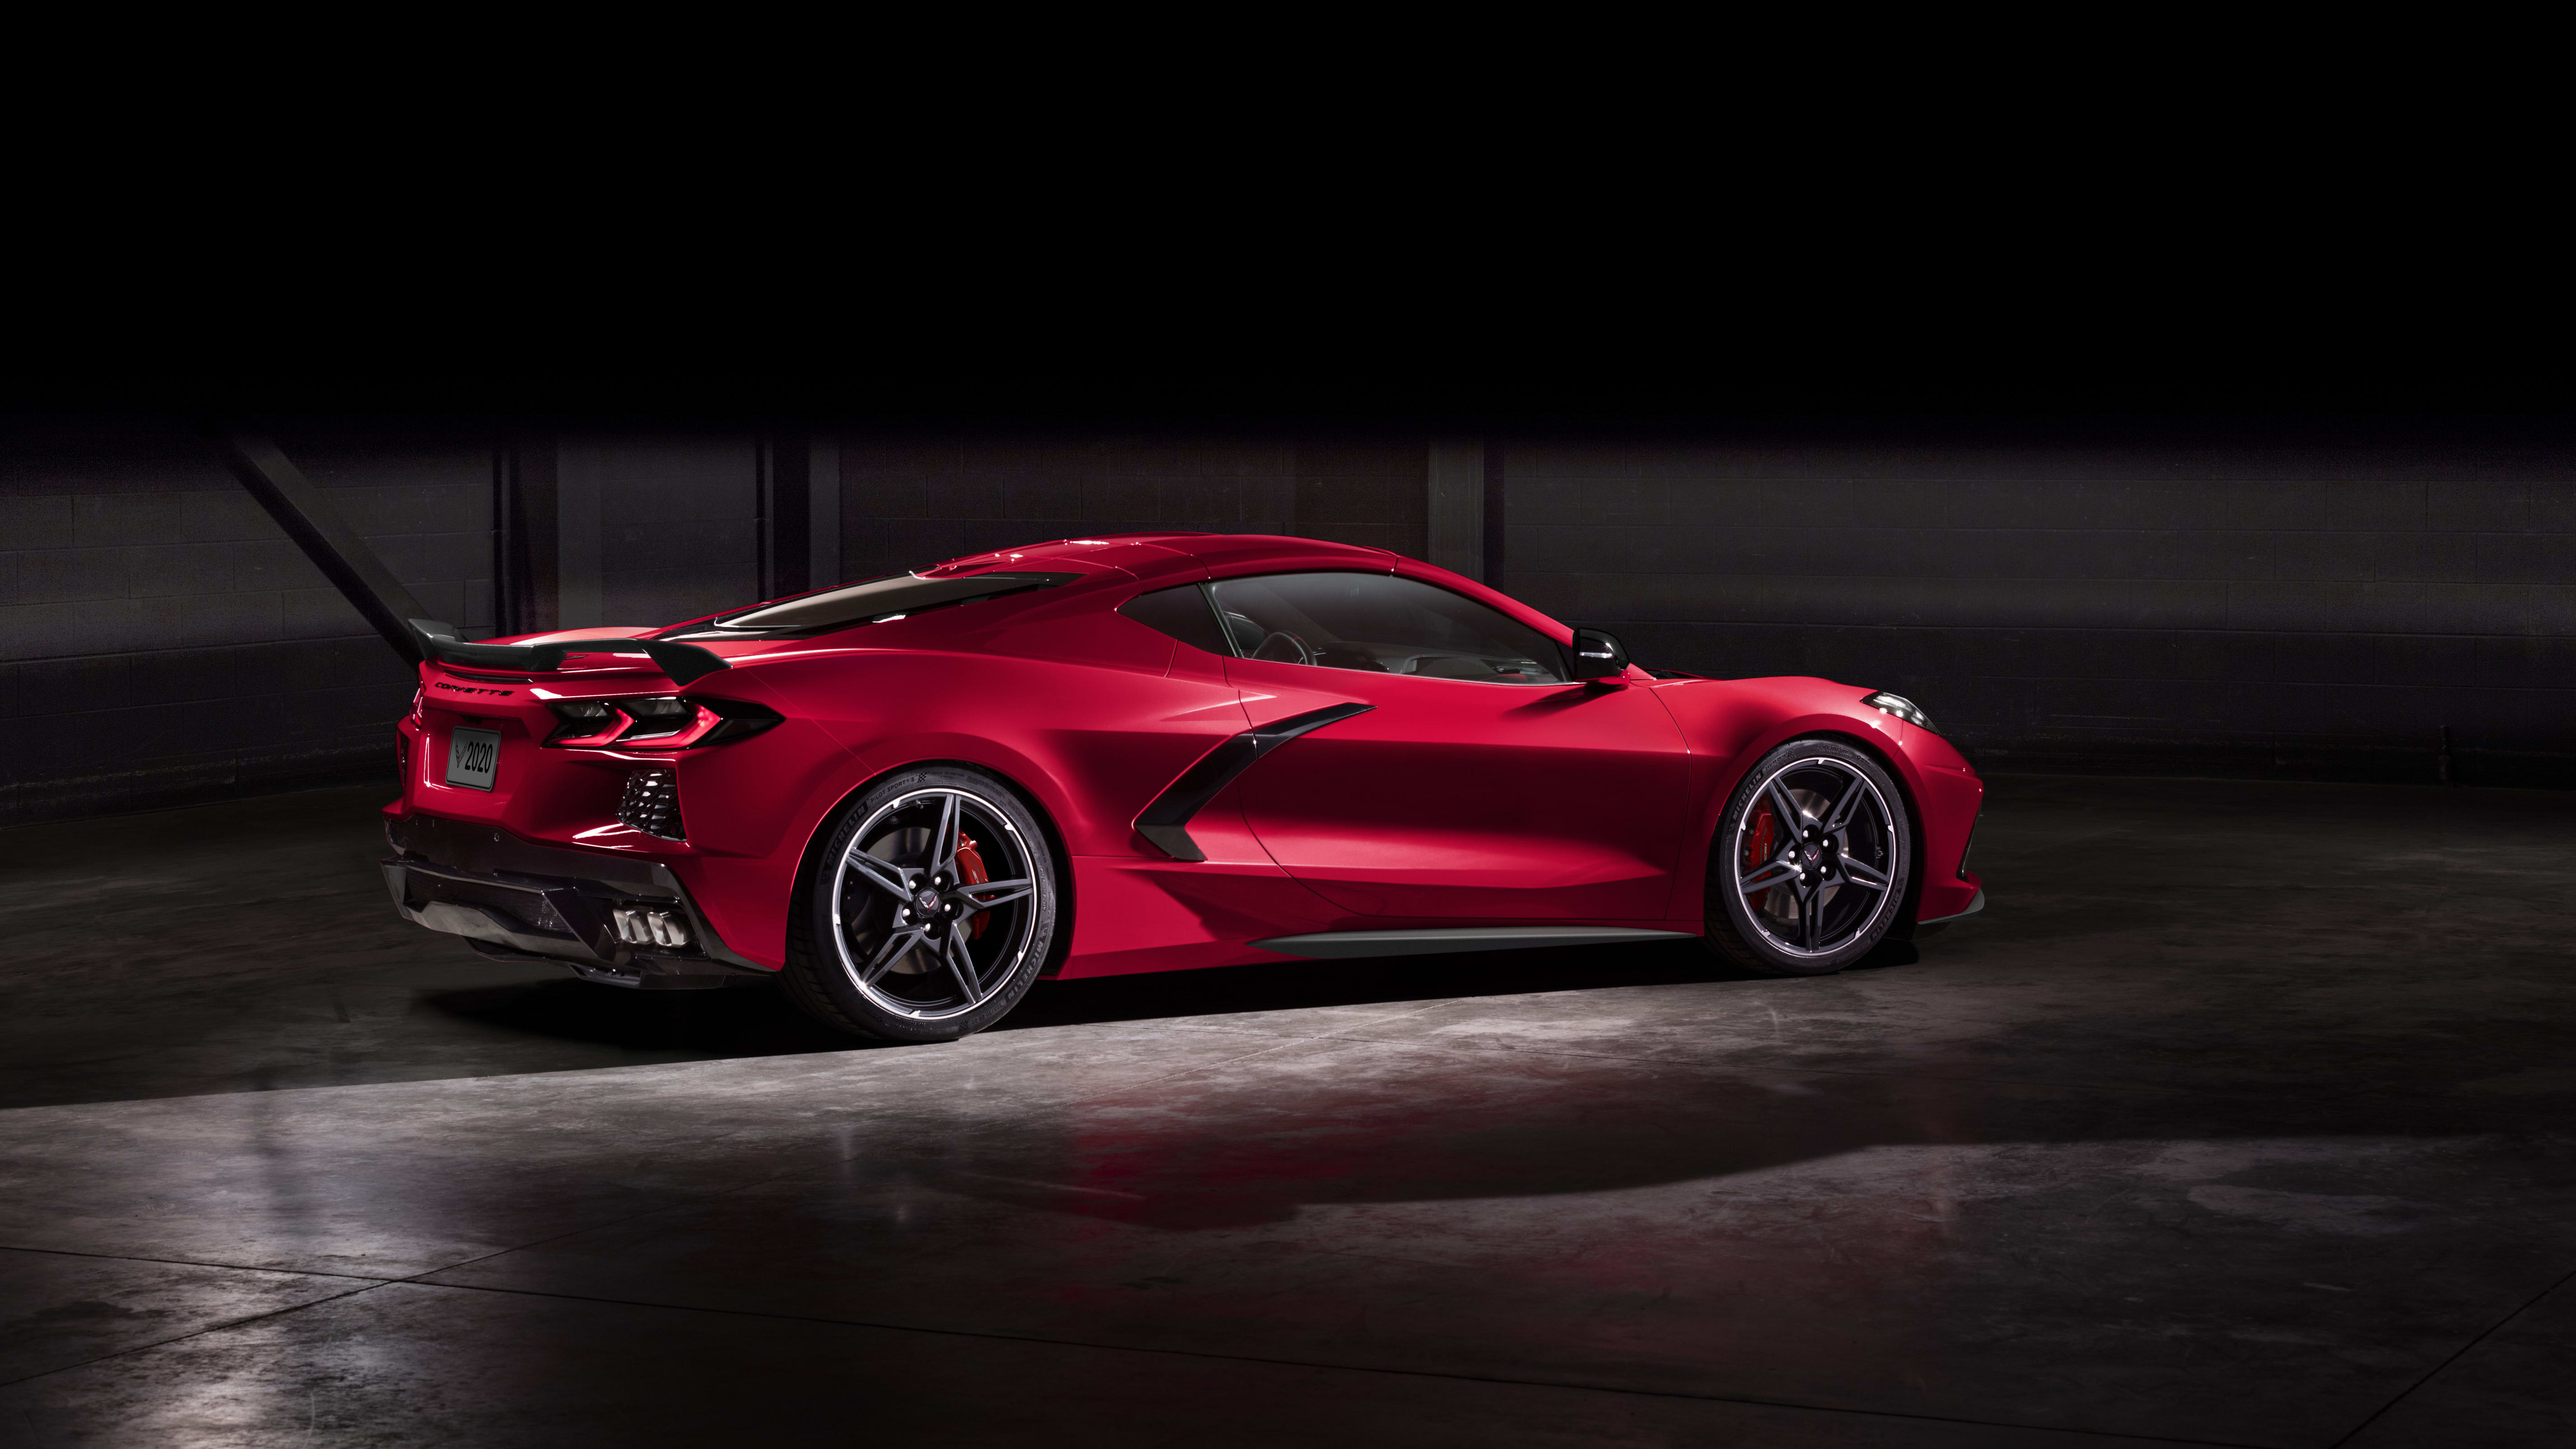 2020 Chevrolet Corvette: First year of production almost sold out